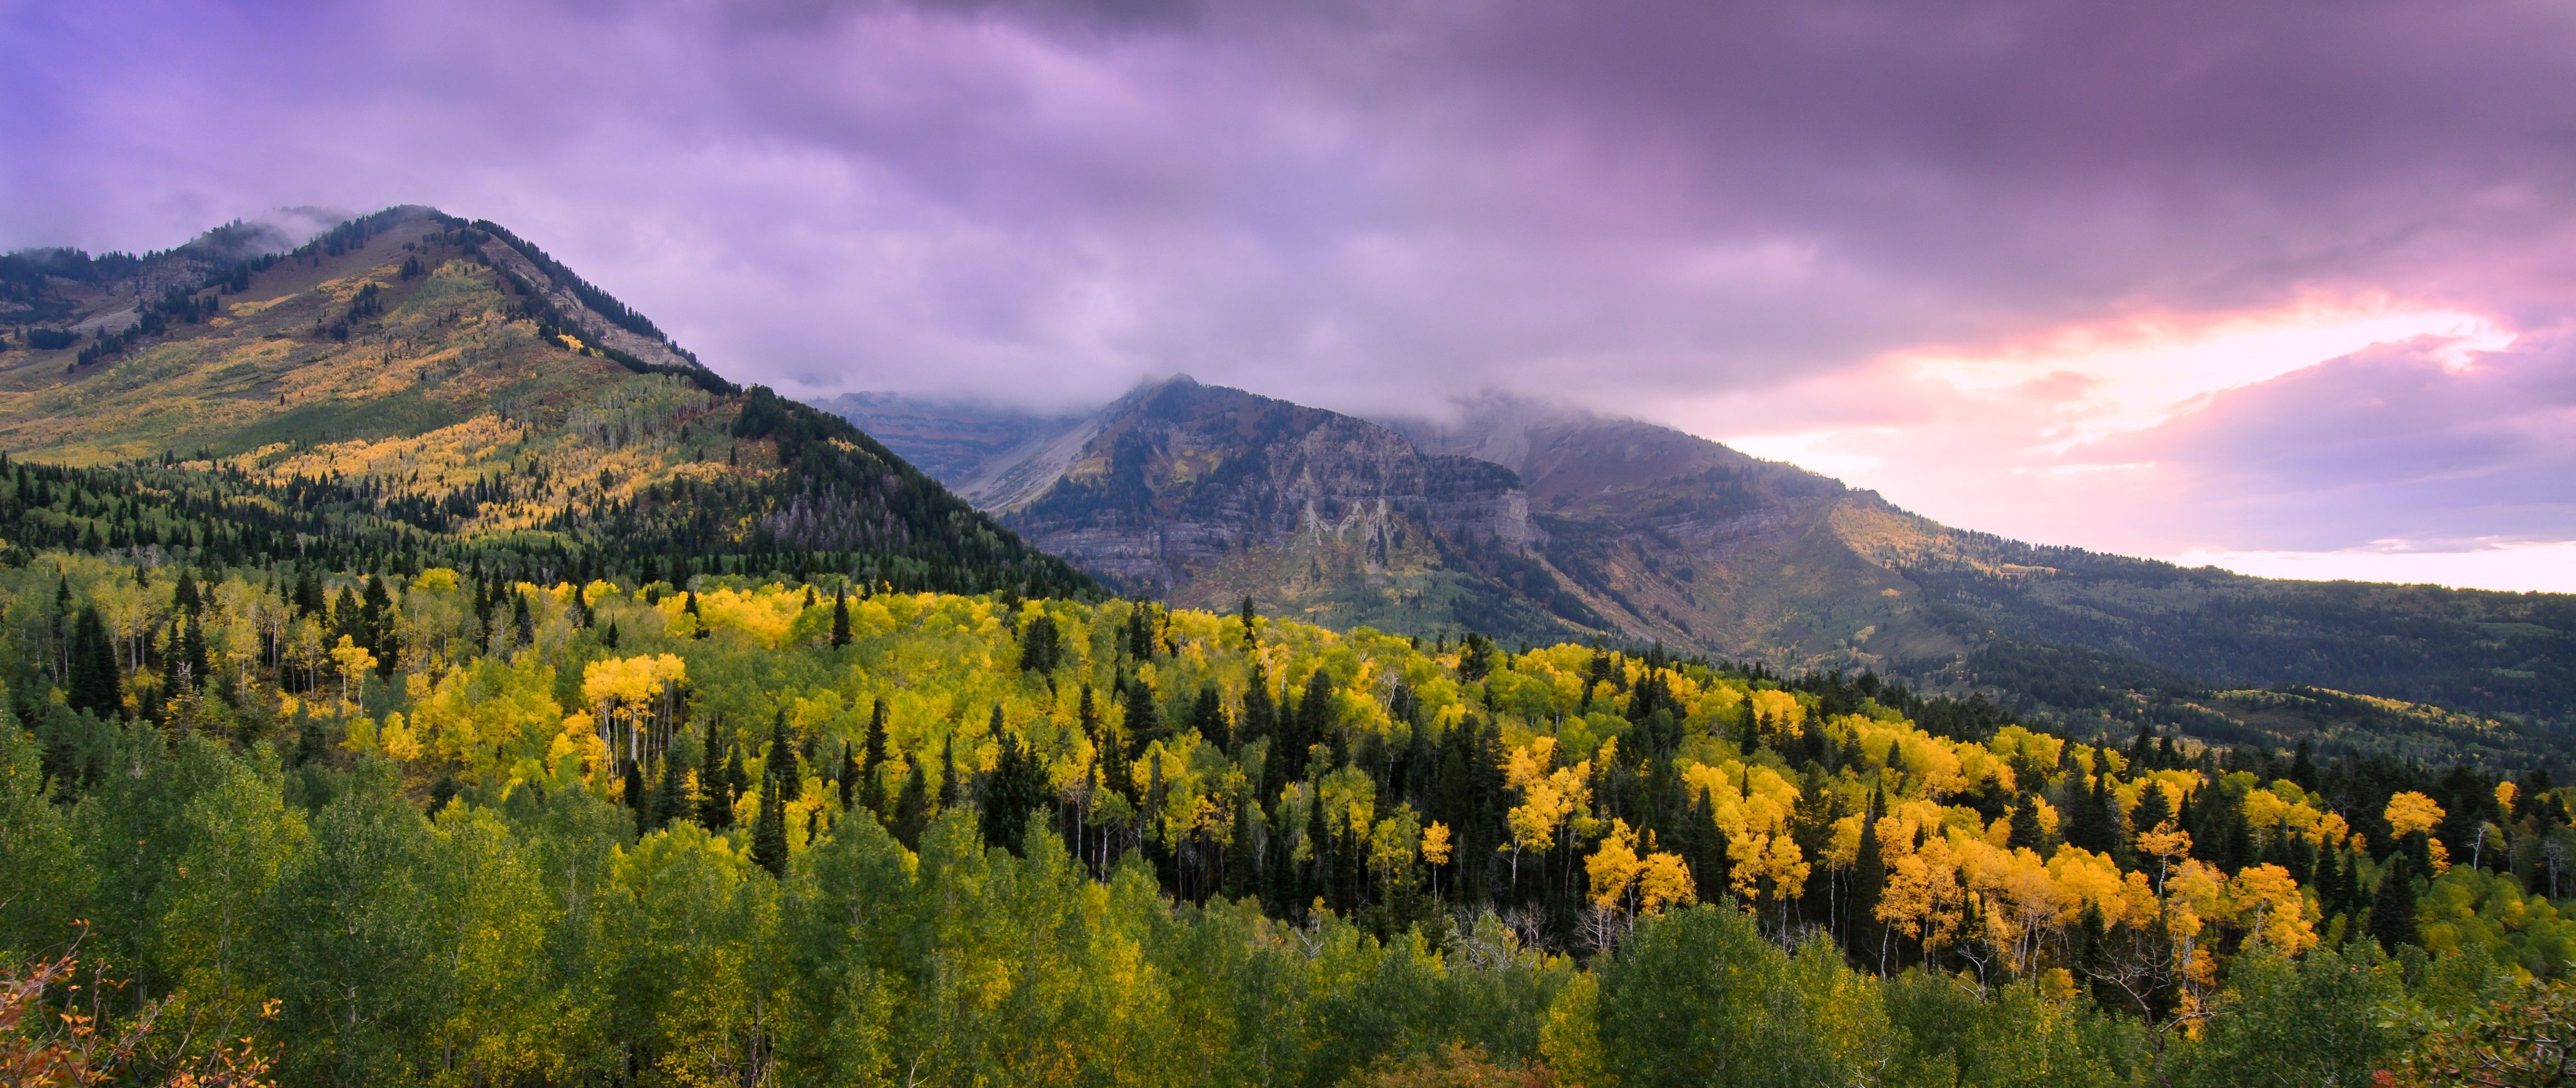 Mountains with yellow trees in the autumn.